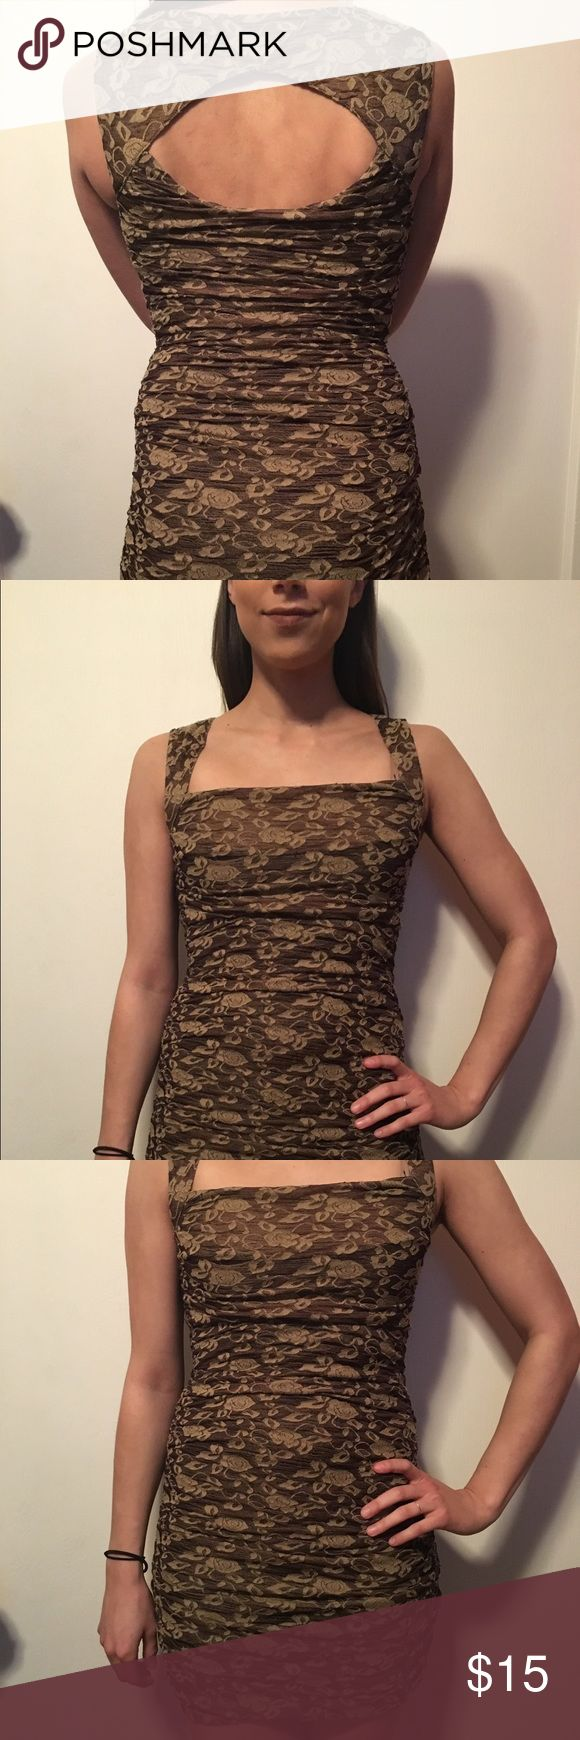 Gold and bronze floral print free people dress Free people gold and bronze floral tight fitting dress. Semi formal. Good for going out for a night on the town. Worn a couple times. In good condition. Free People Dresses Mini